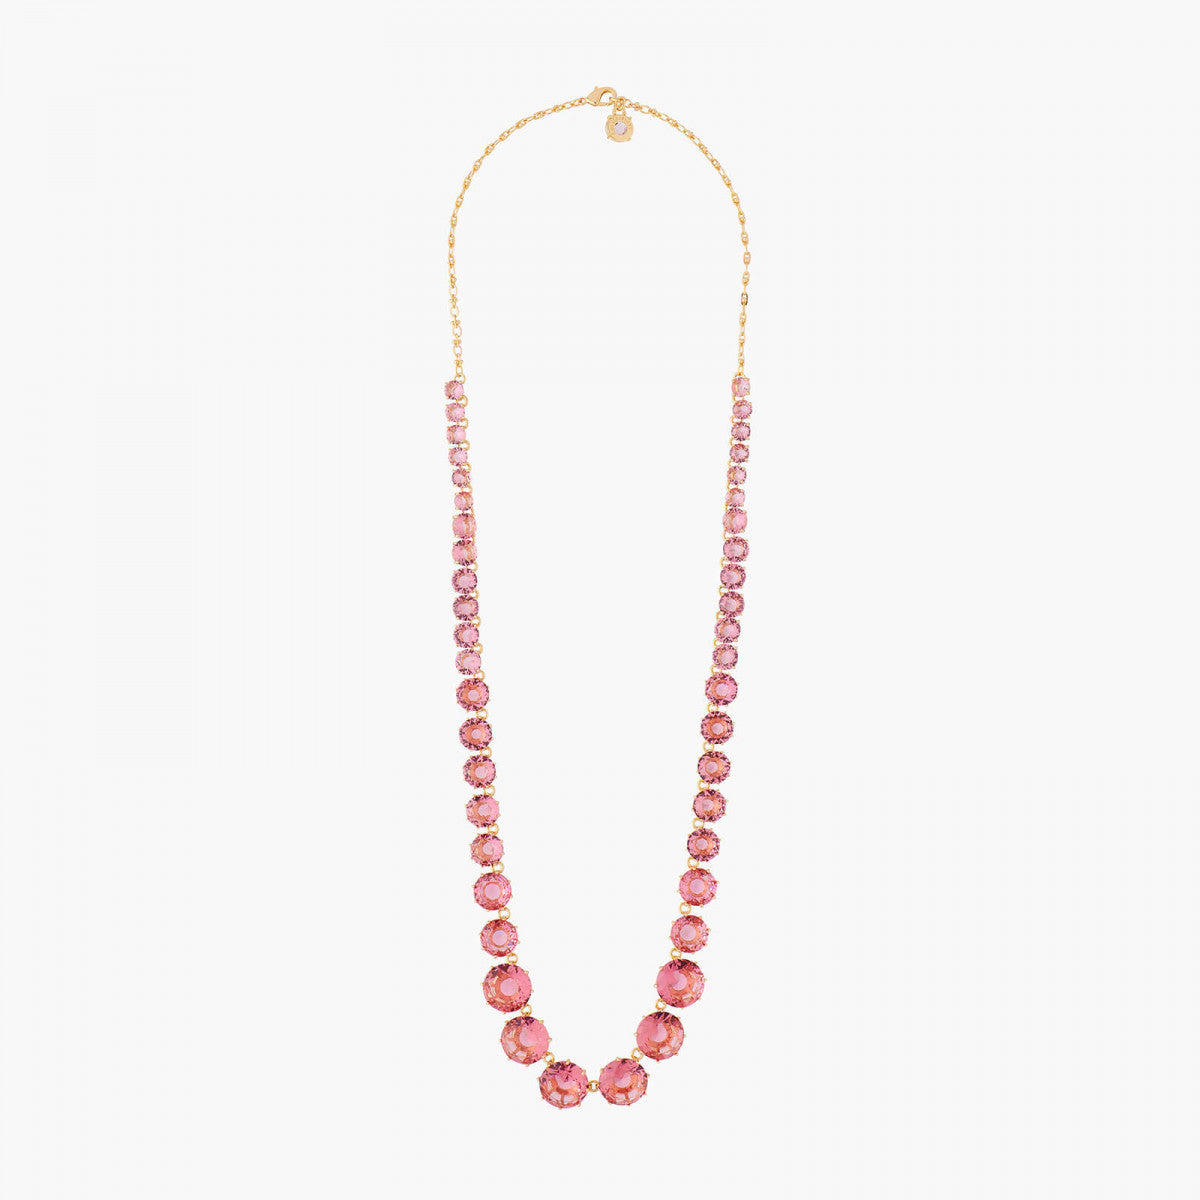 La Diamantine Long Necklace with Round Stones